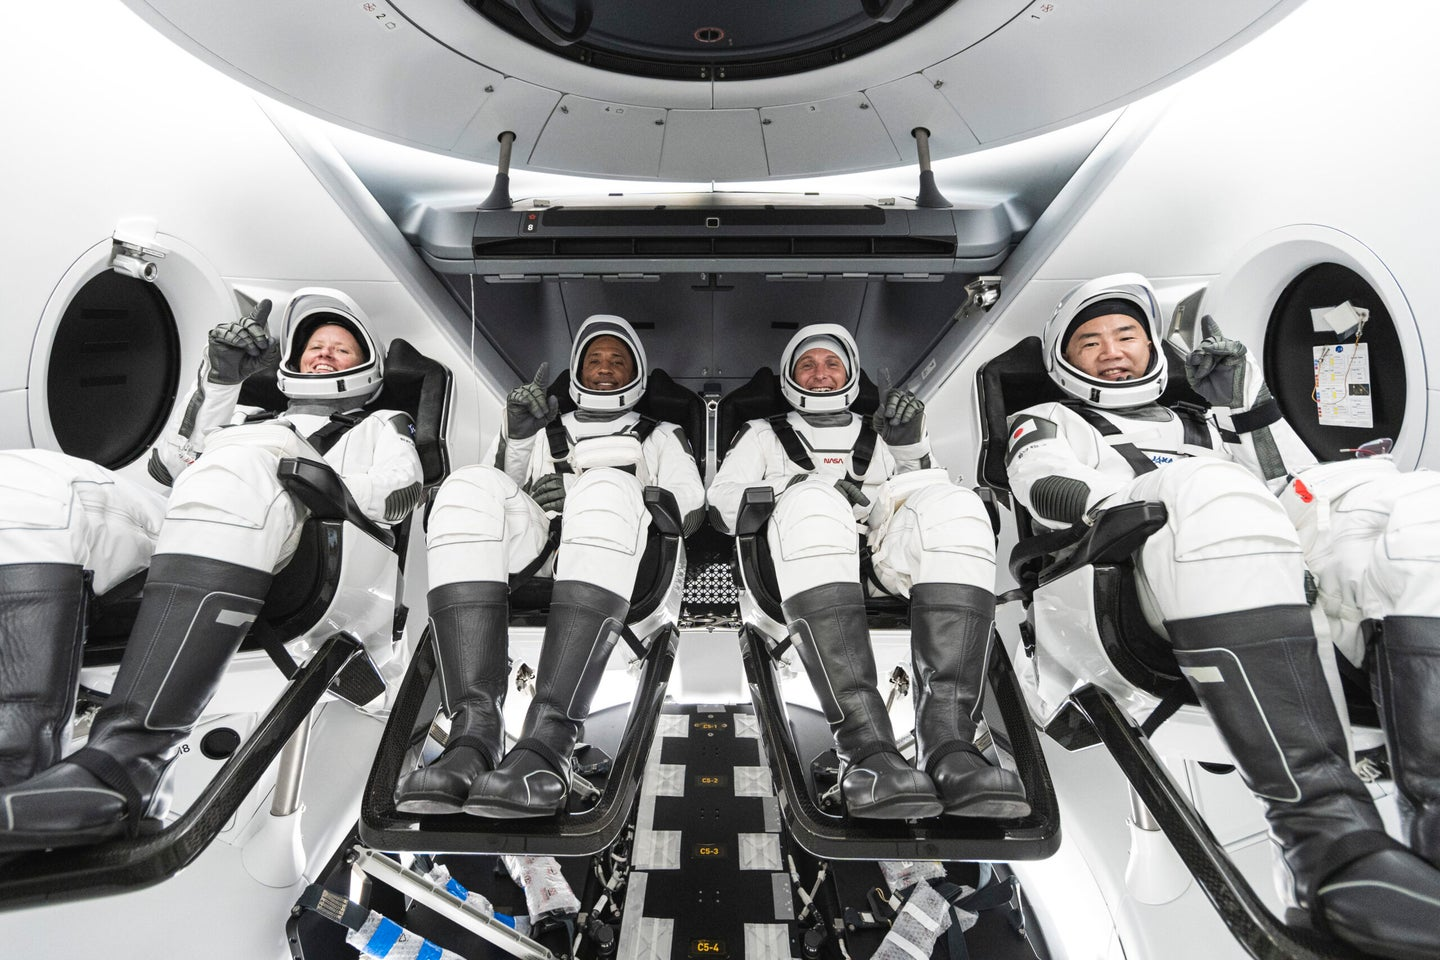 The Crew-1 crew. From left to right, NASA astronauts Shannon Walker, Victor Glover, and Mike Hopkins, and JAXA astronaut Soichi Noguchi.